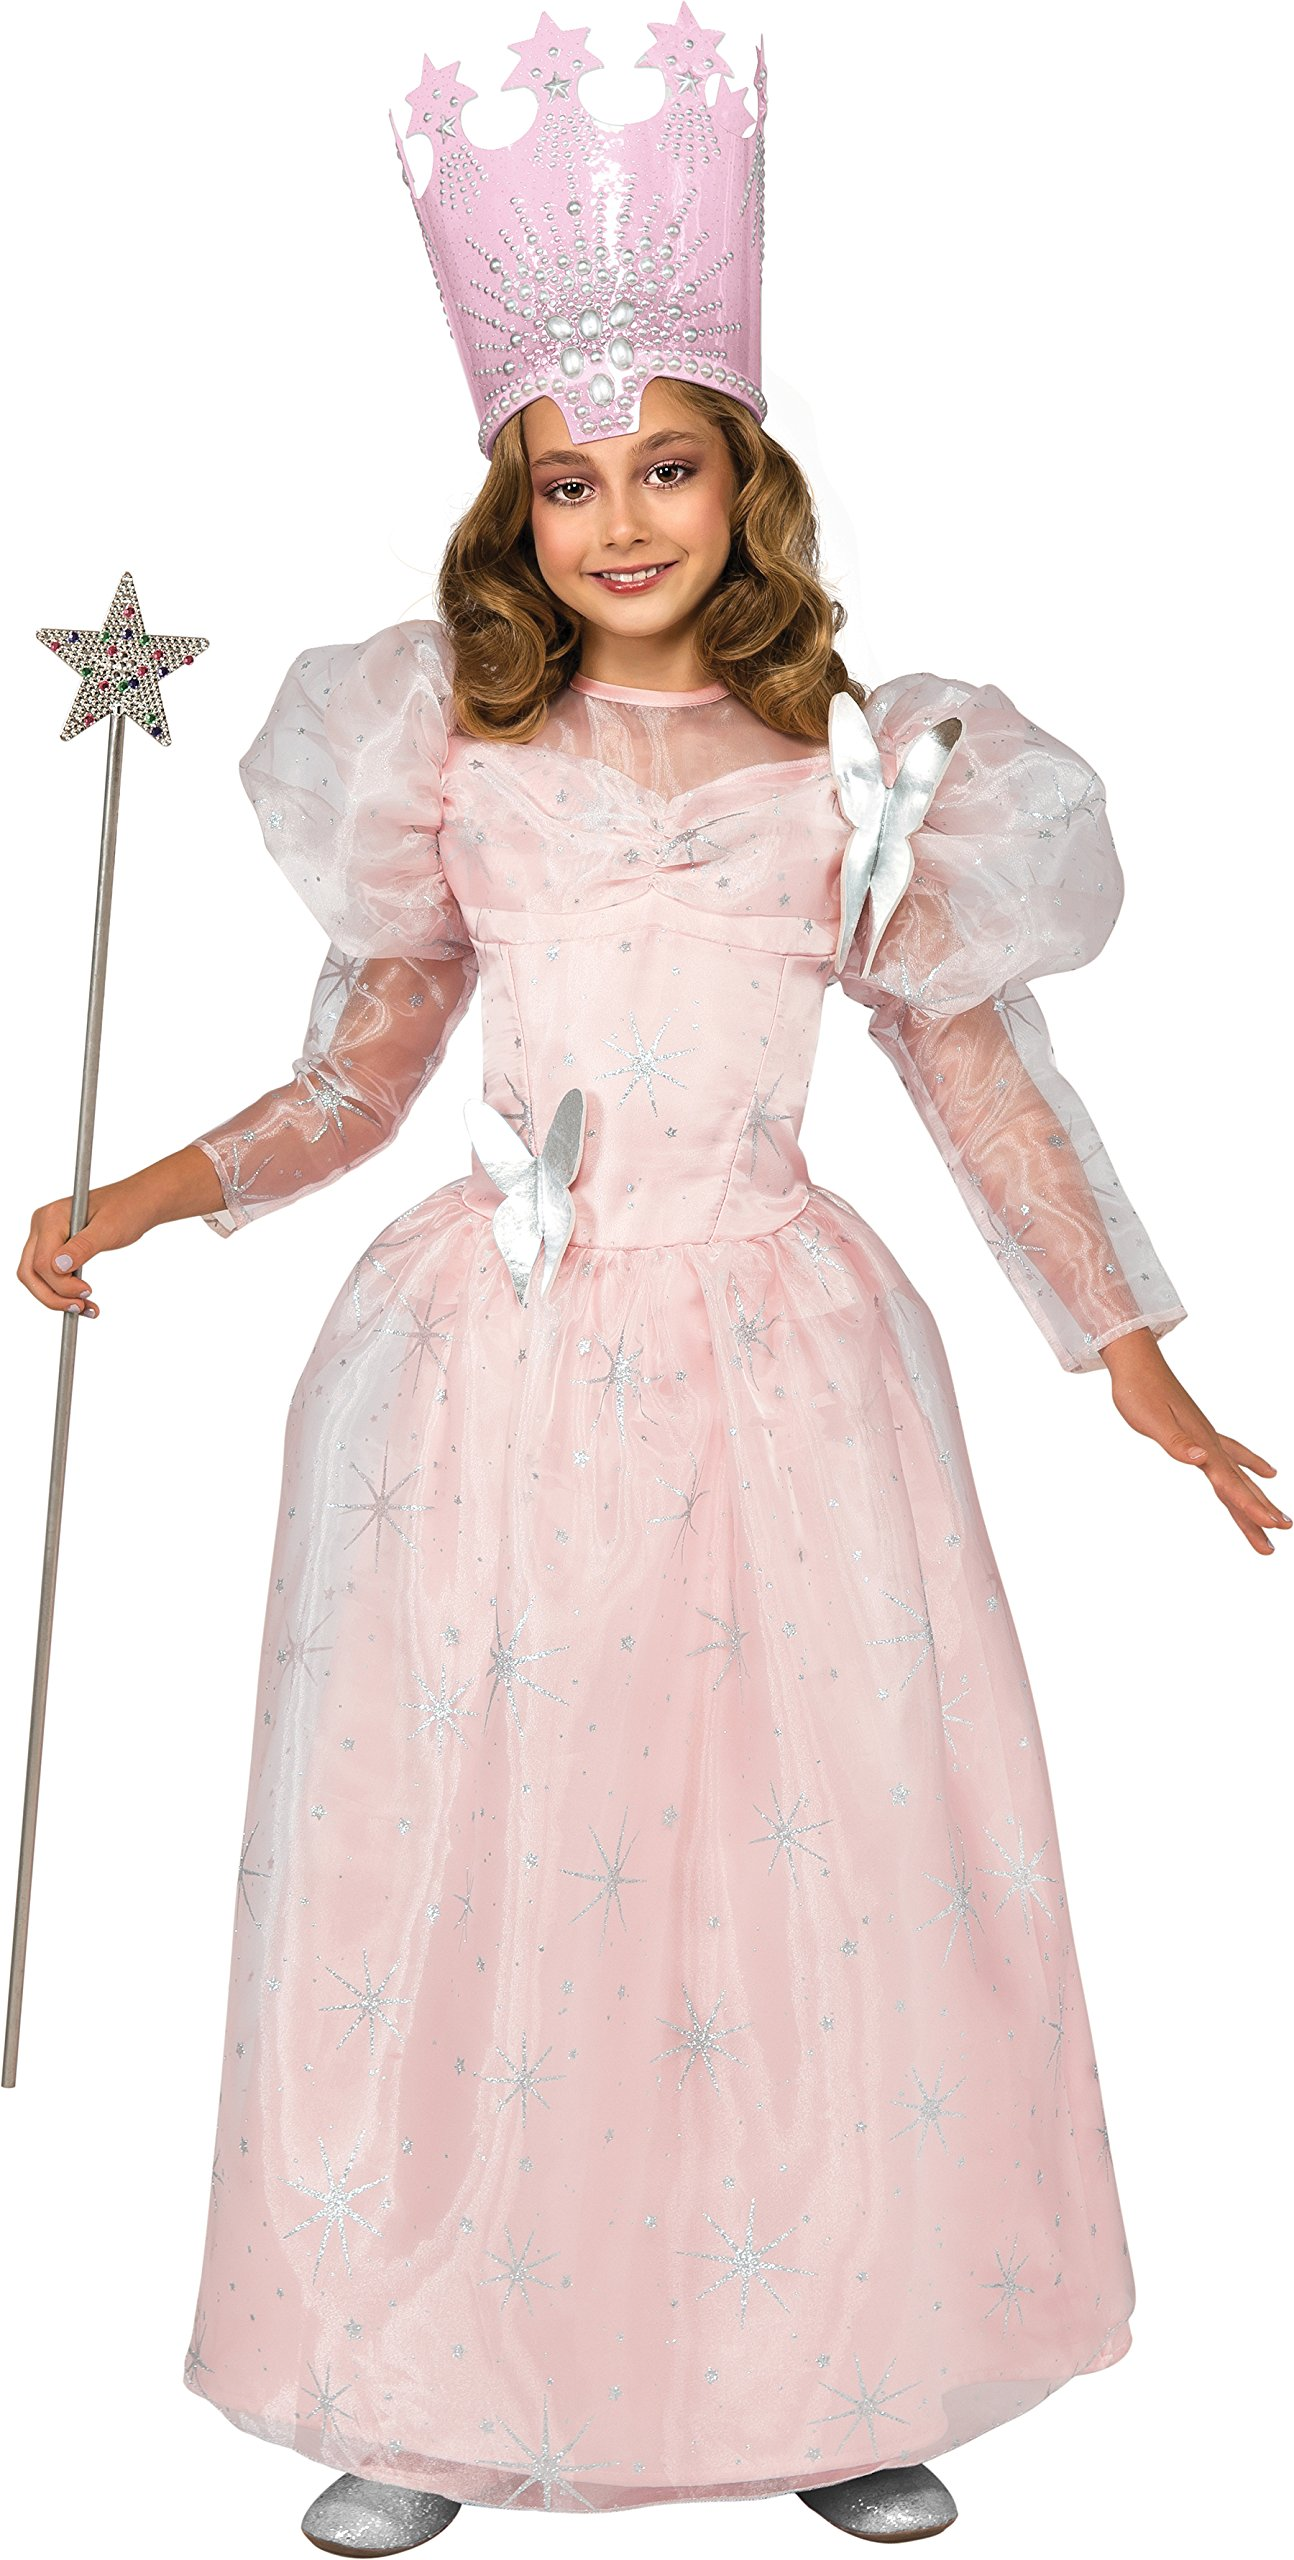 Wizard of Oz Deluxe Glinda The Good Witch Costume, Small (75th Anniversary Edition) by Rubie's